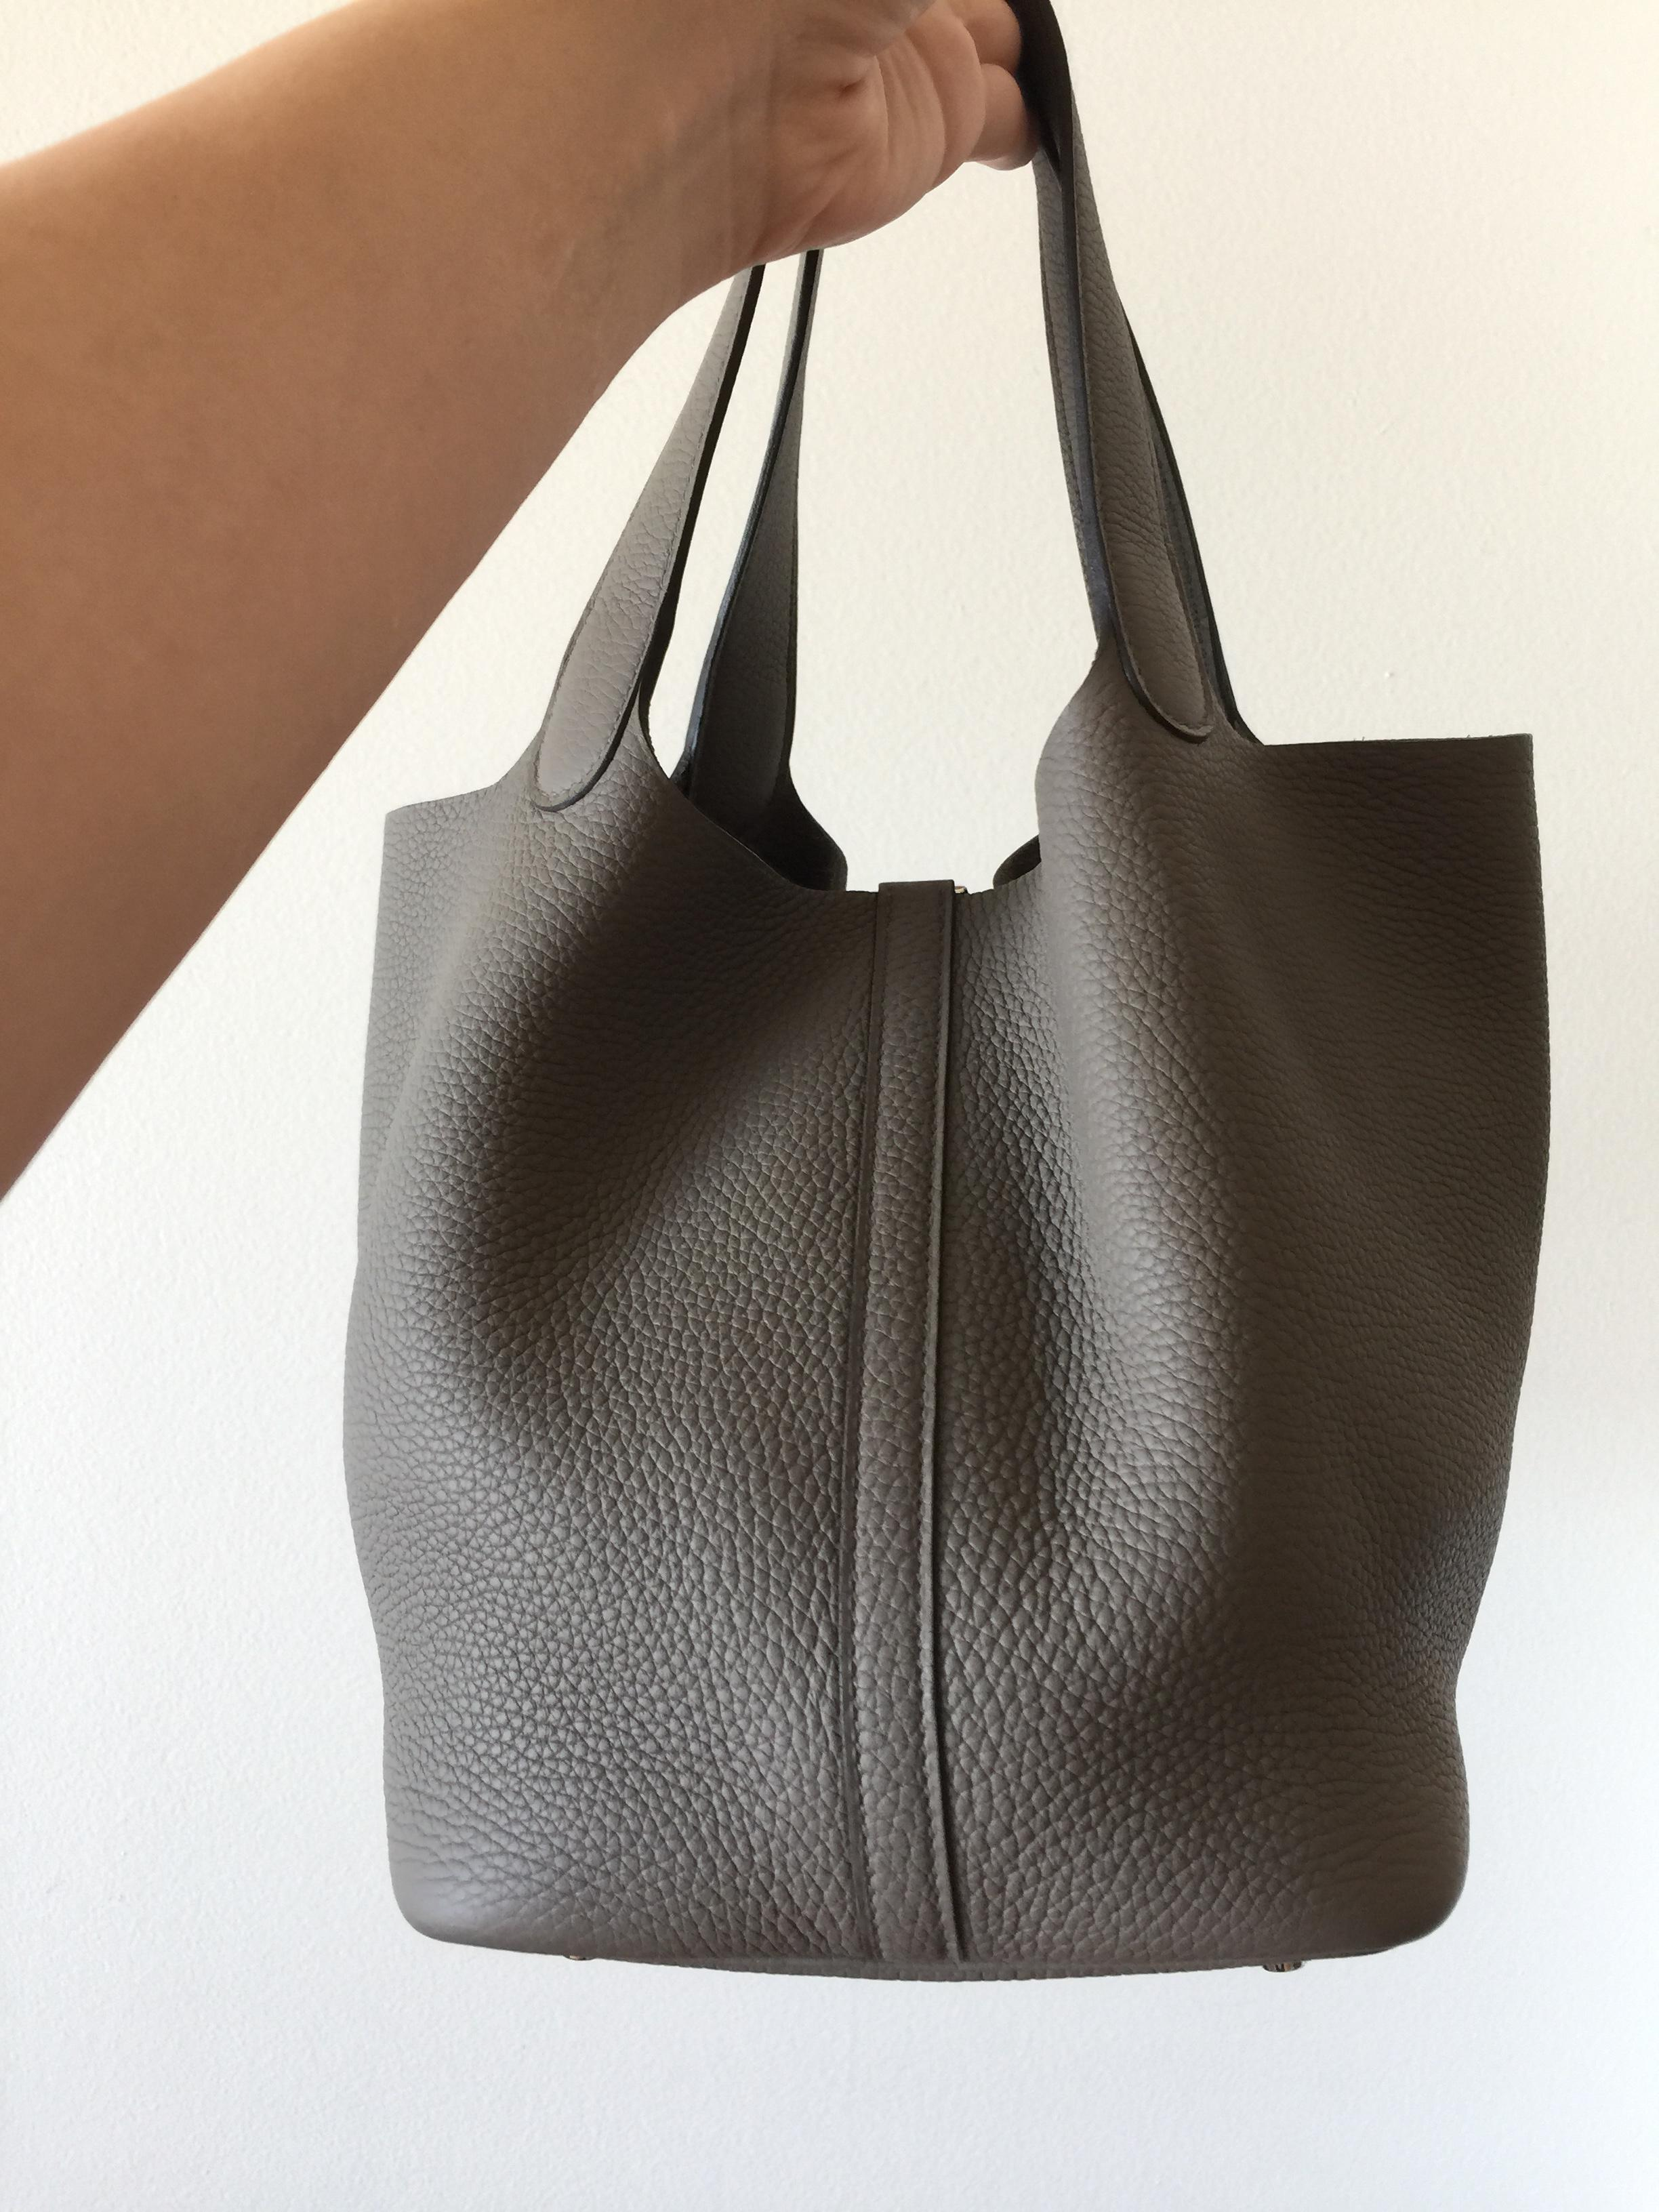 cfbbad58dadfc ... where can i buy hermès picotin lock 22 medium clemence etain color tote  tradesy 69771 bc0b4 ...